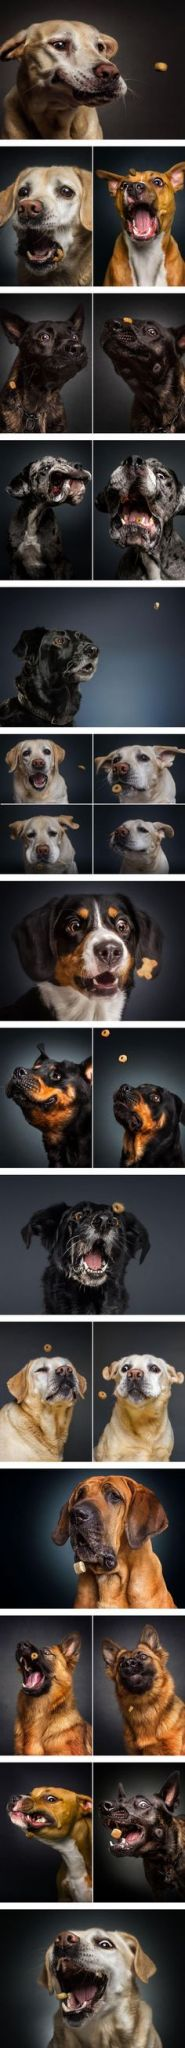 grapher Captures The Hilarious Expressions of Dogs Catching Treats